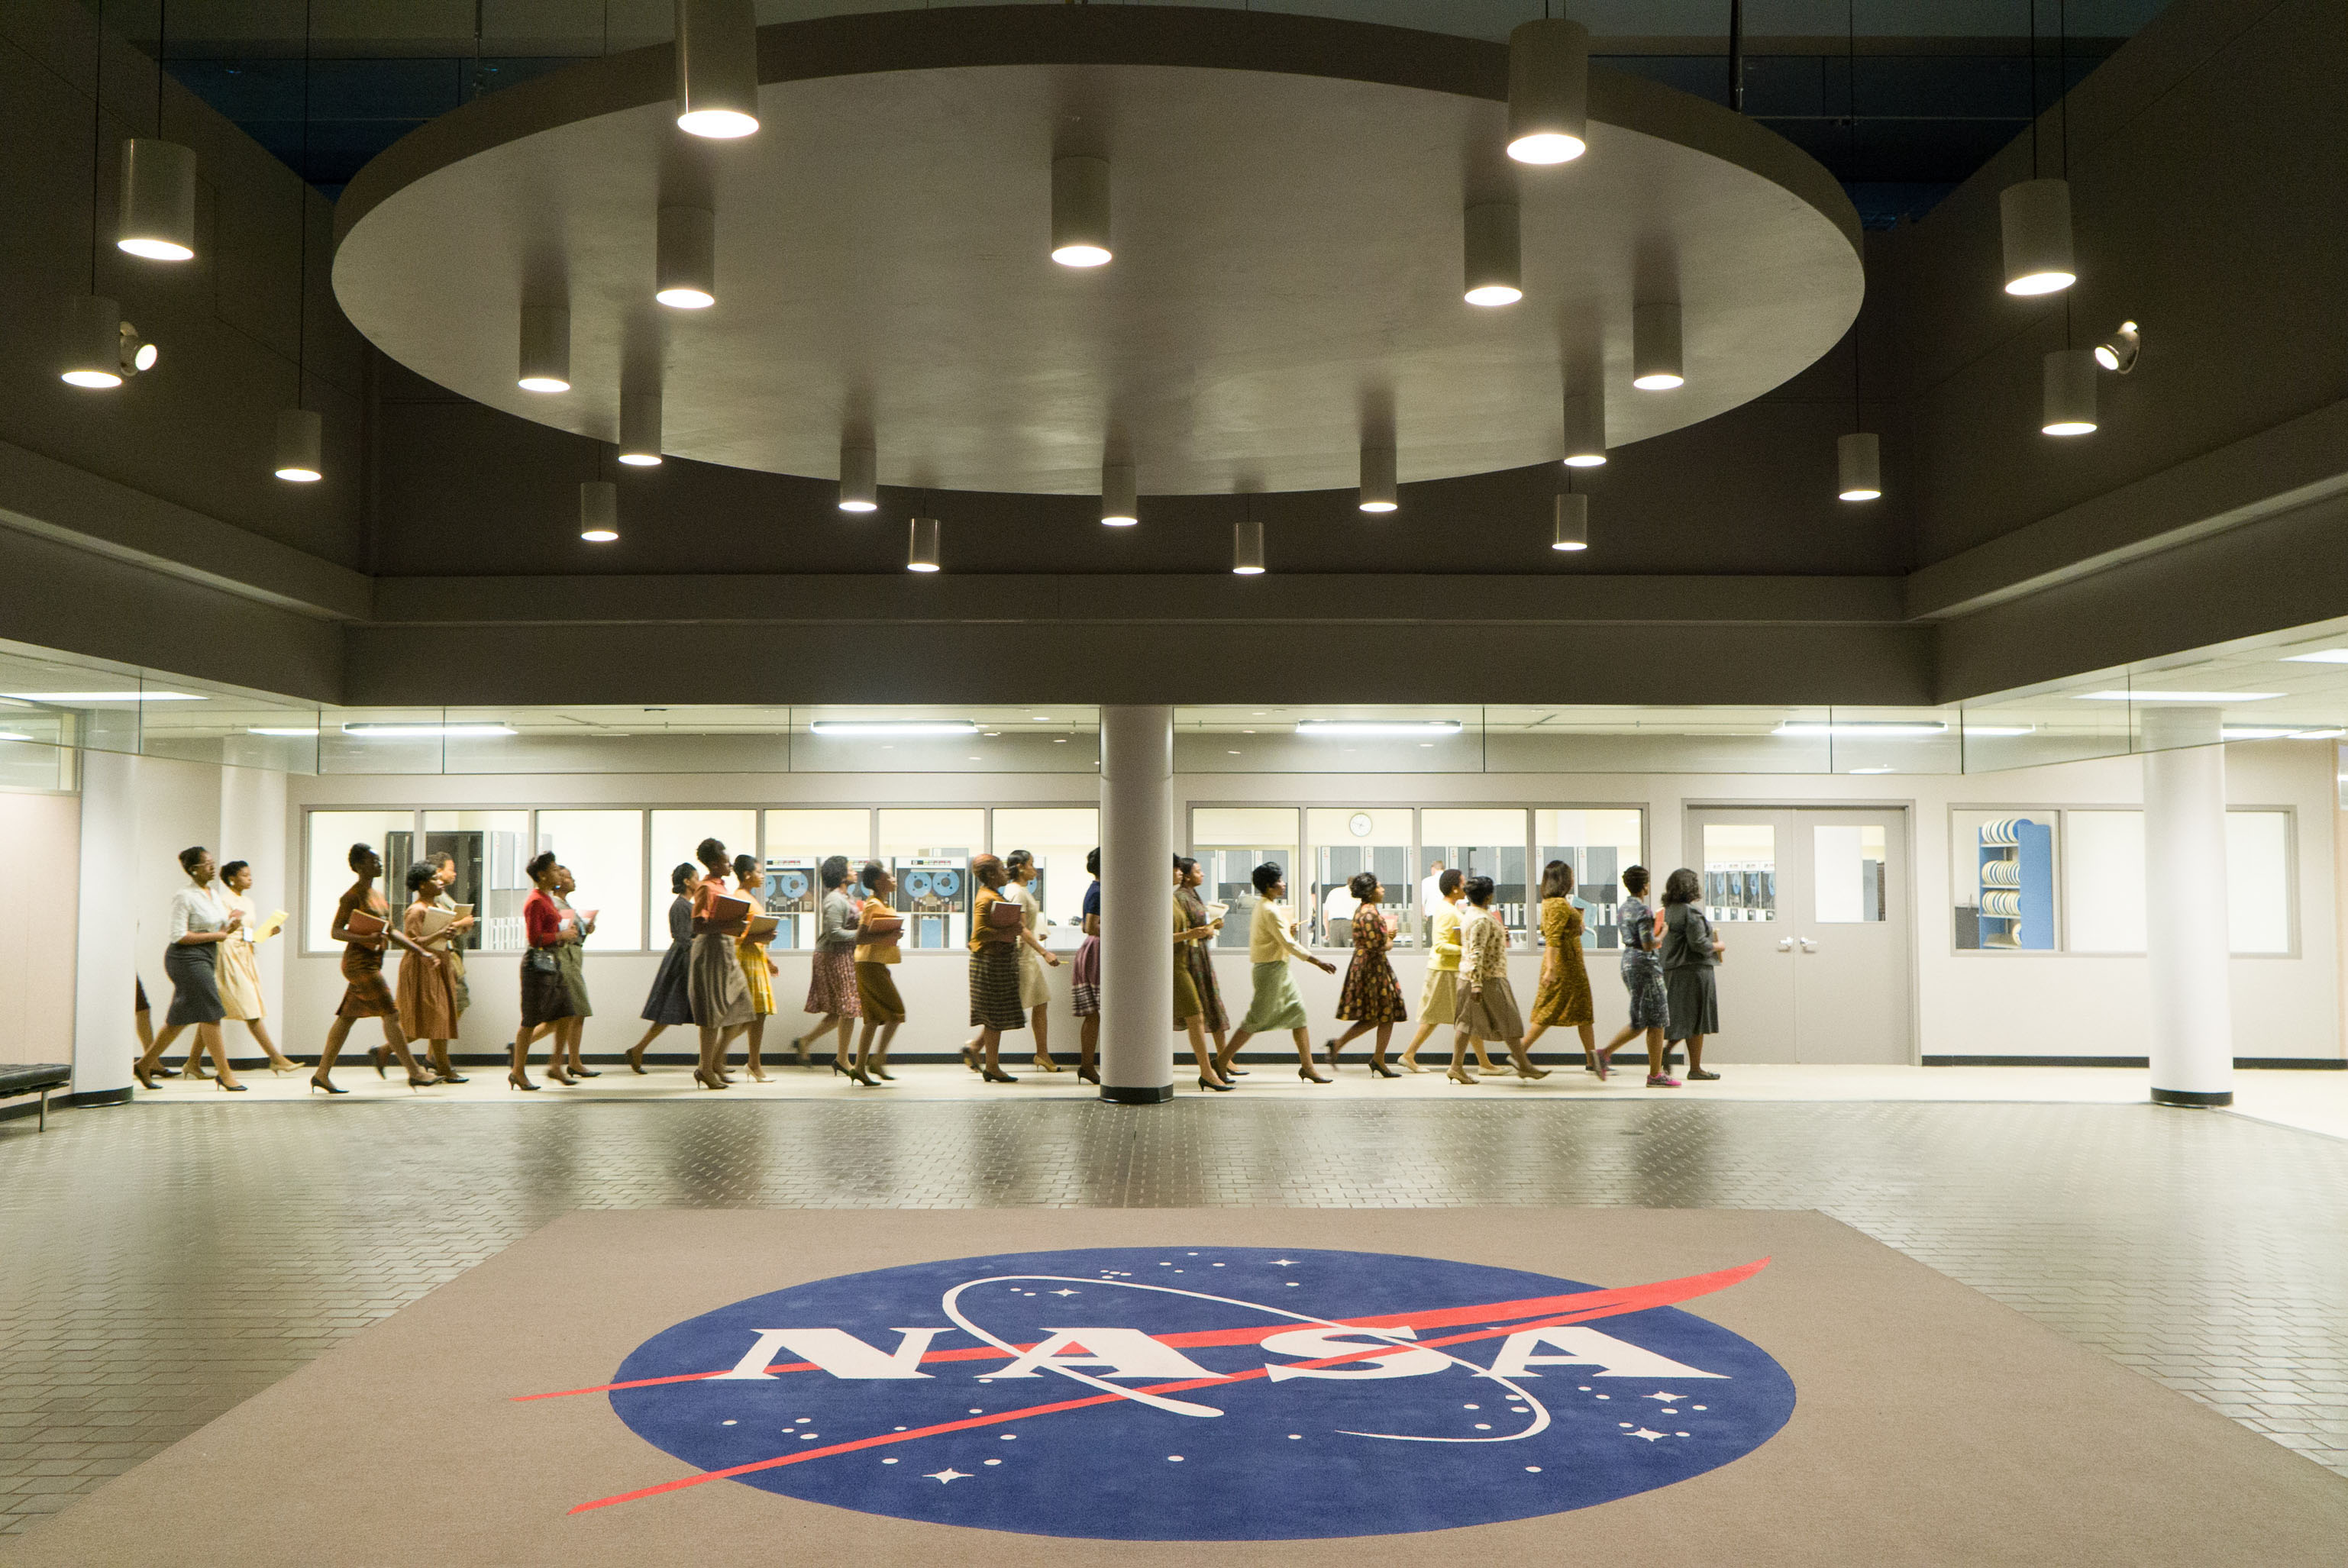 On 'Hidden Figures' Set, NASA's Early Years Take Center Stage